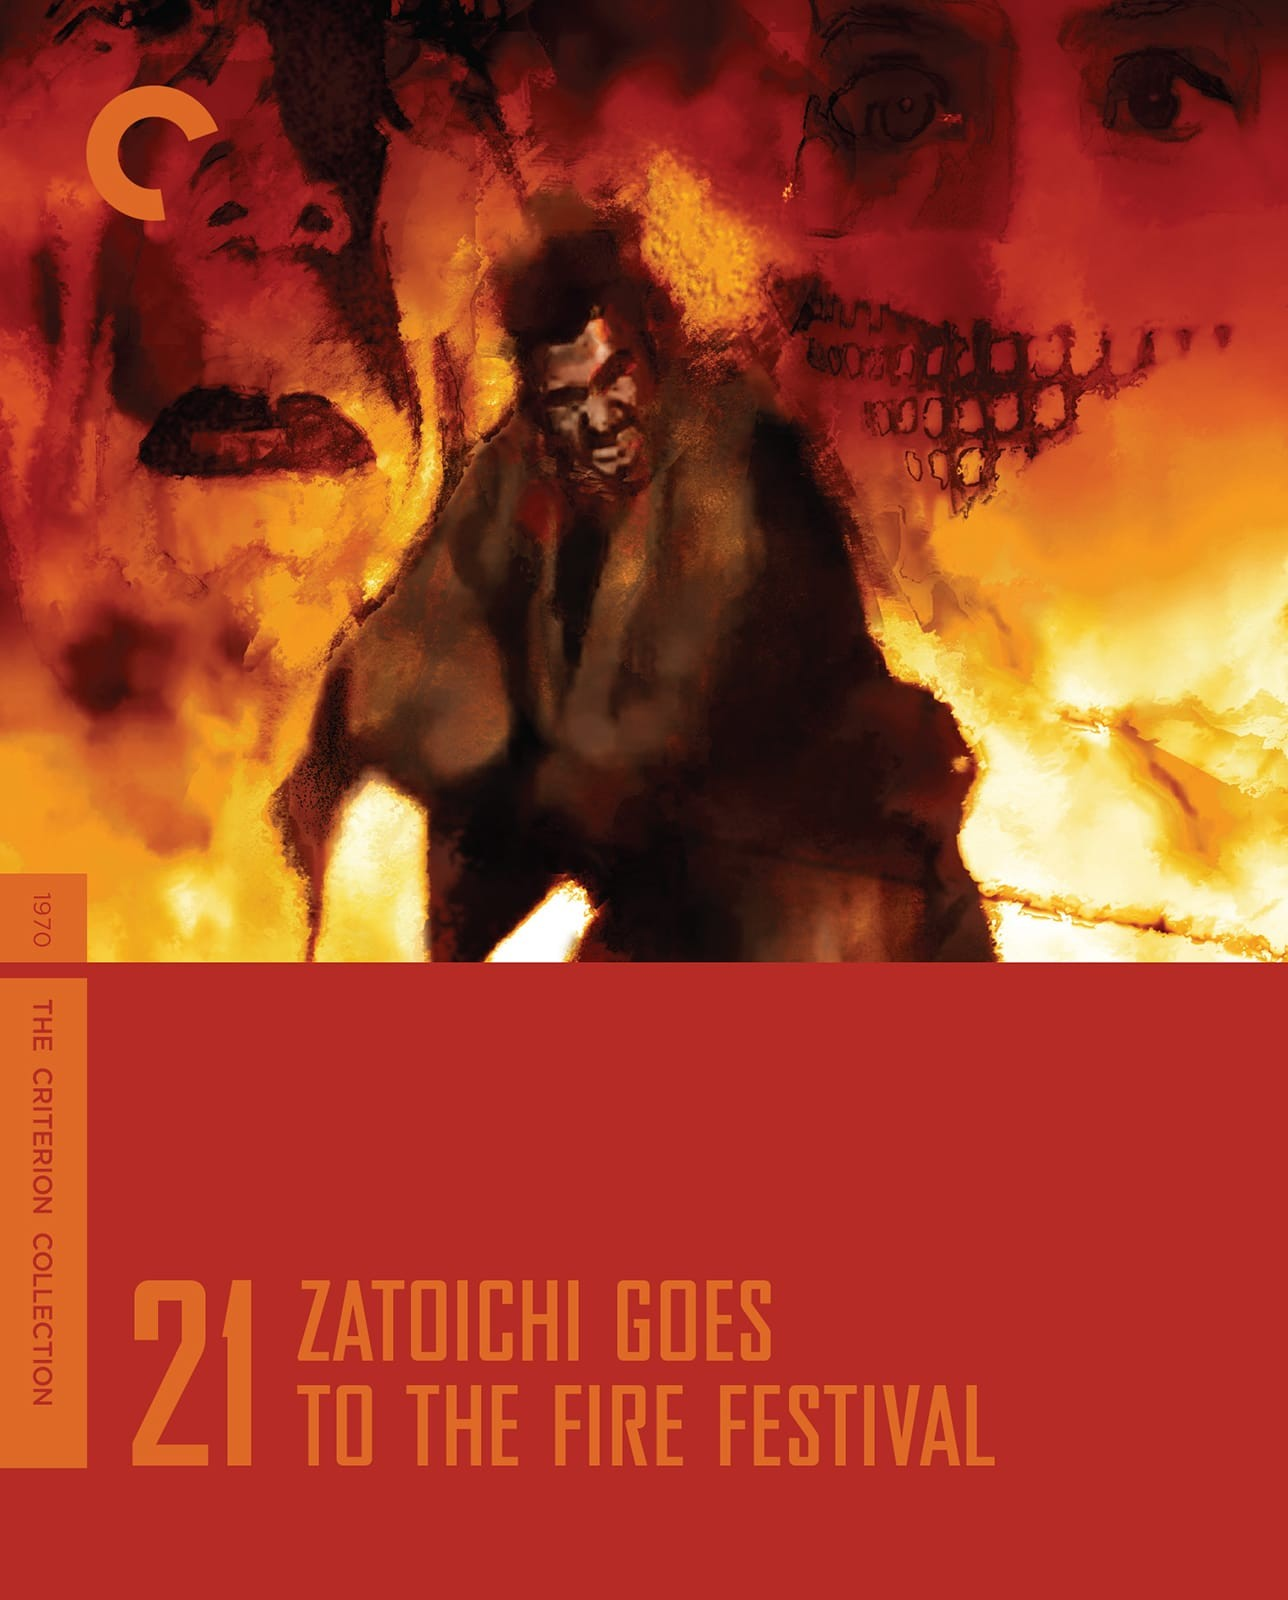 Zatoichi Goes to the Fire Festival